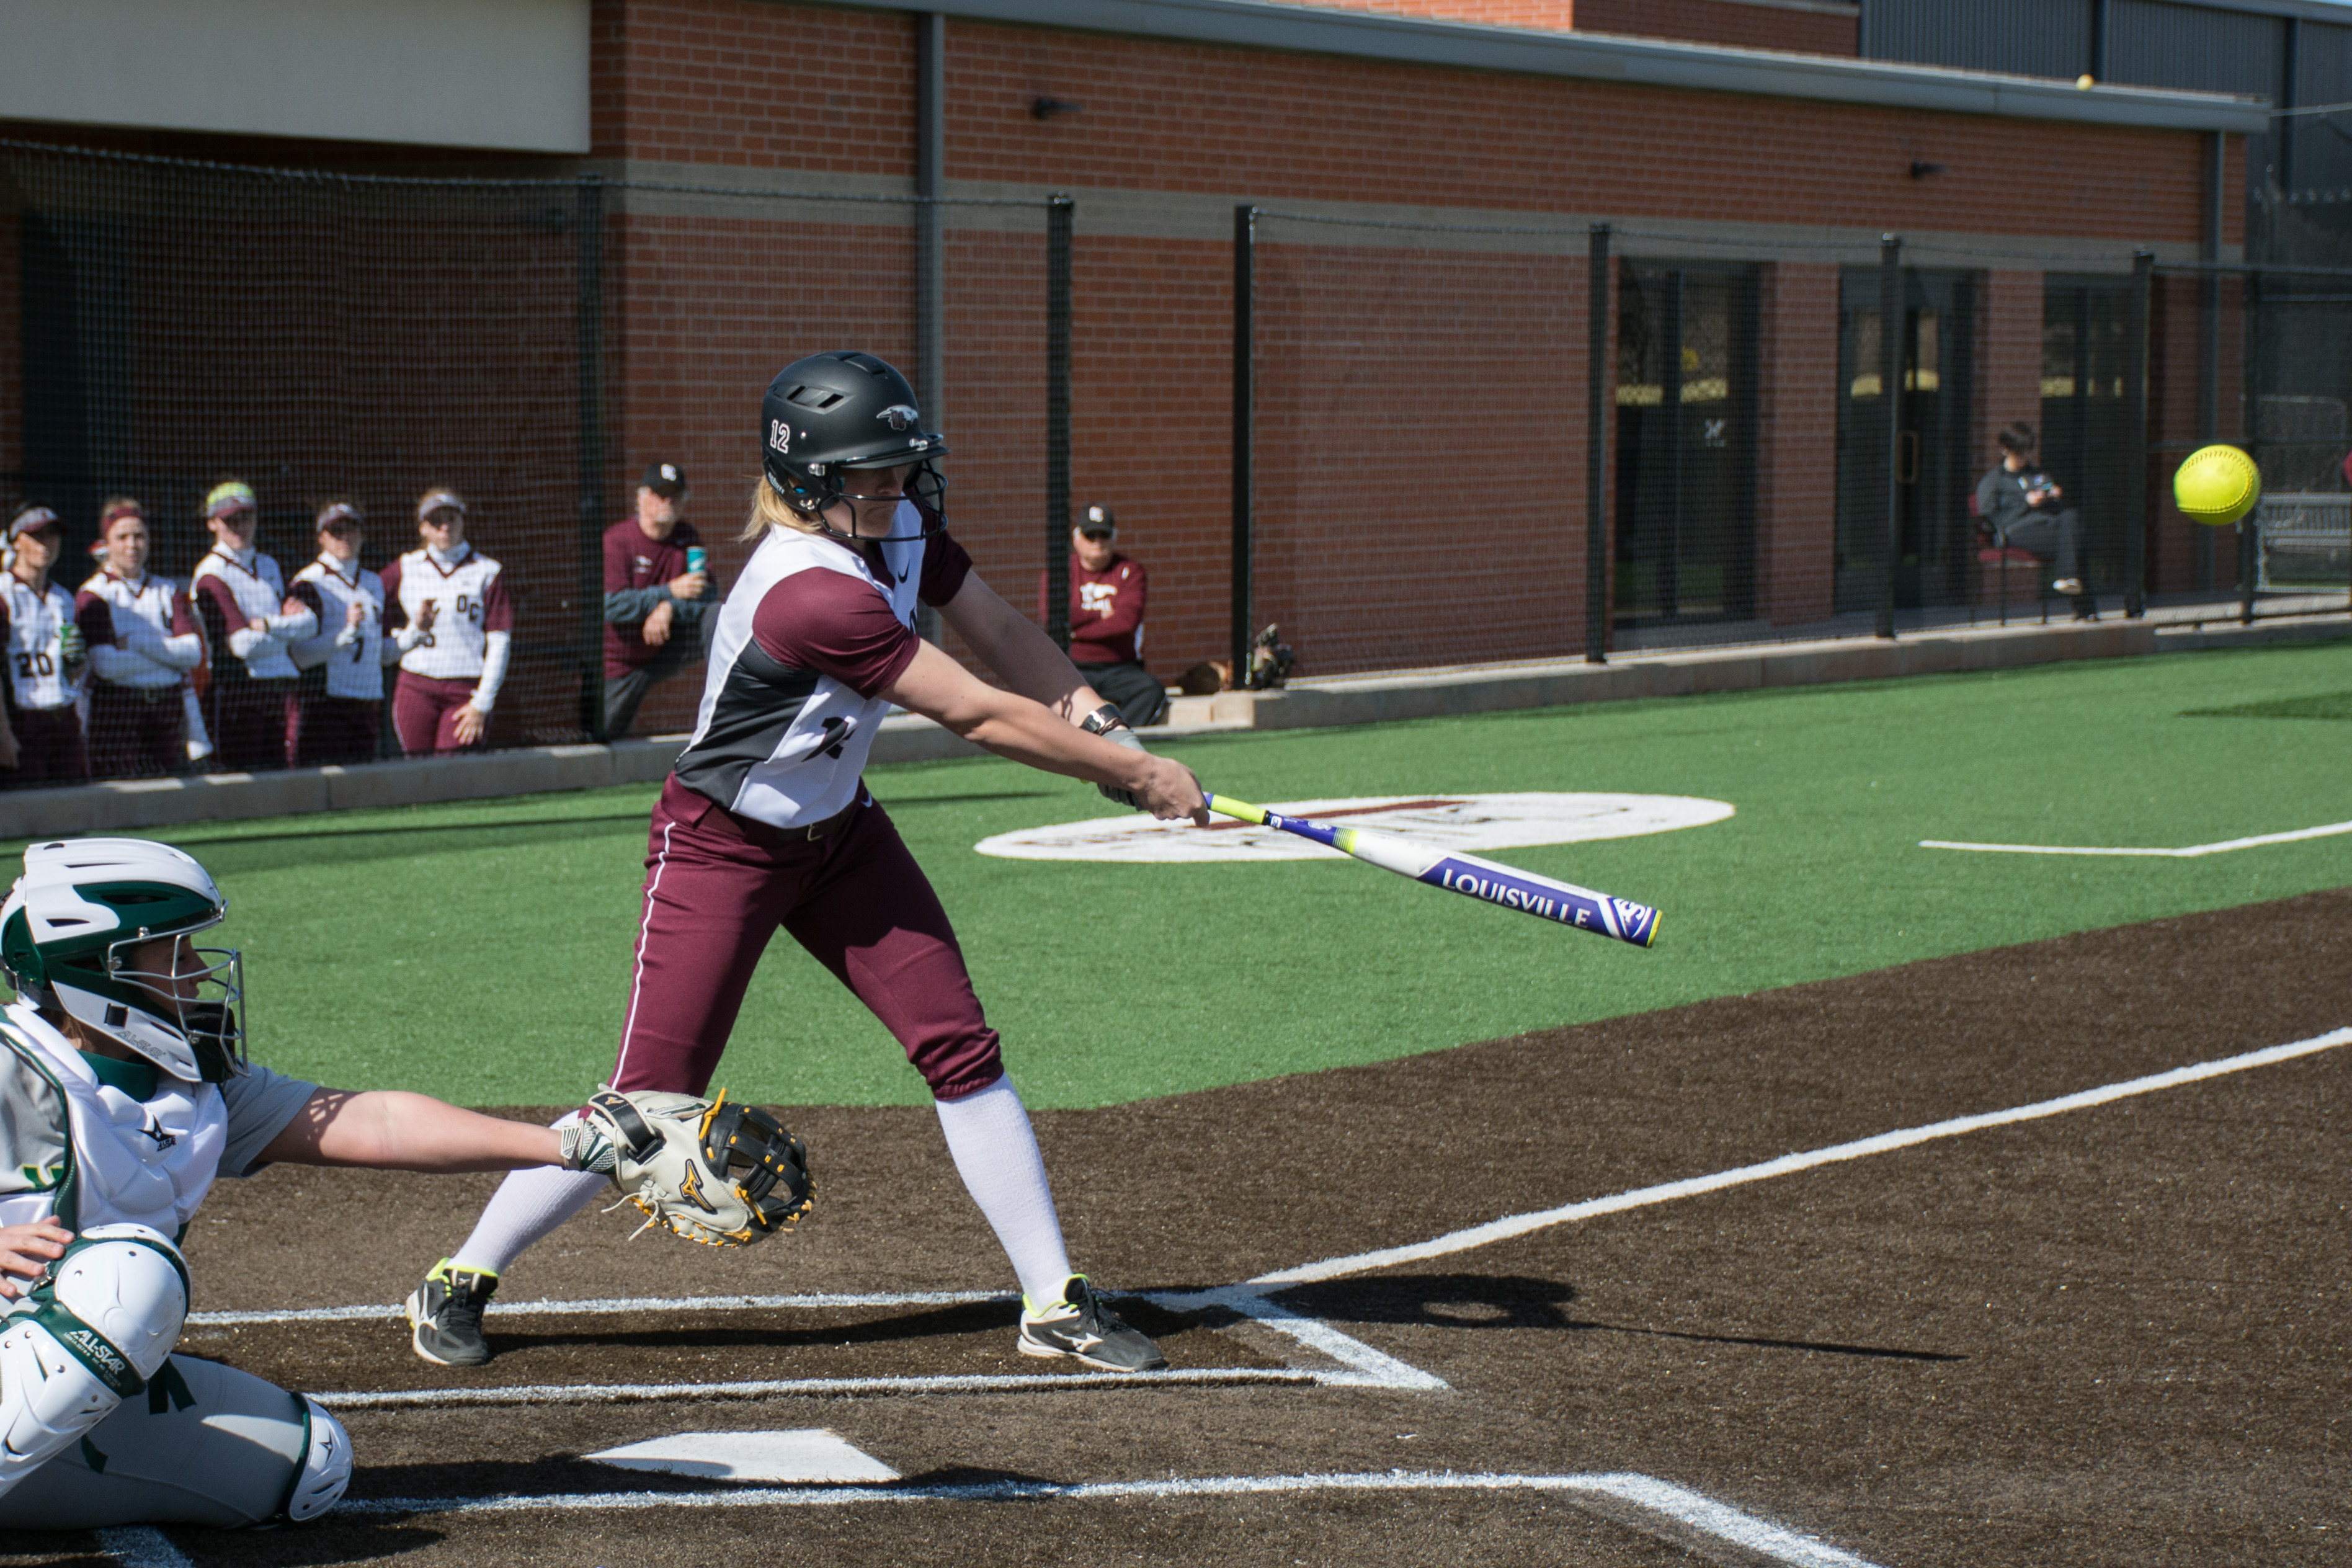 Avery Walker connects with the ball during the team's doubleheader against USAO on Feb. 16. Photo by Abby Bellow.